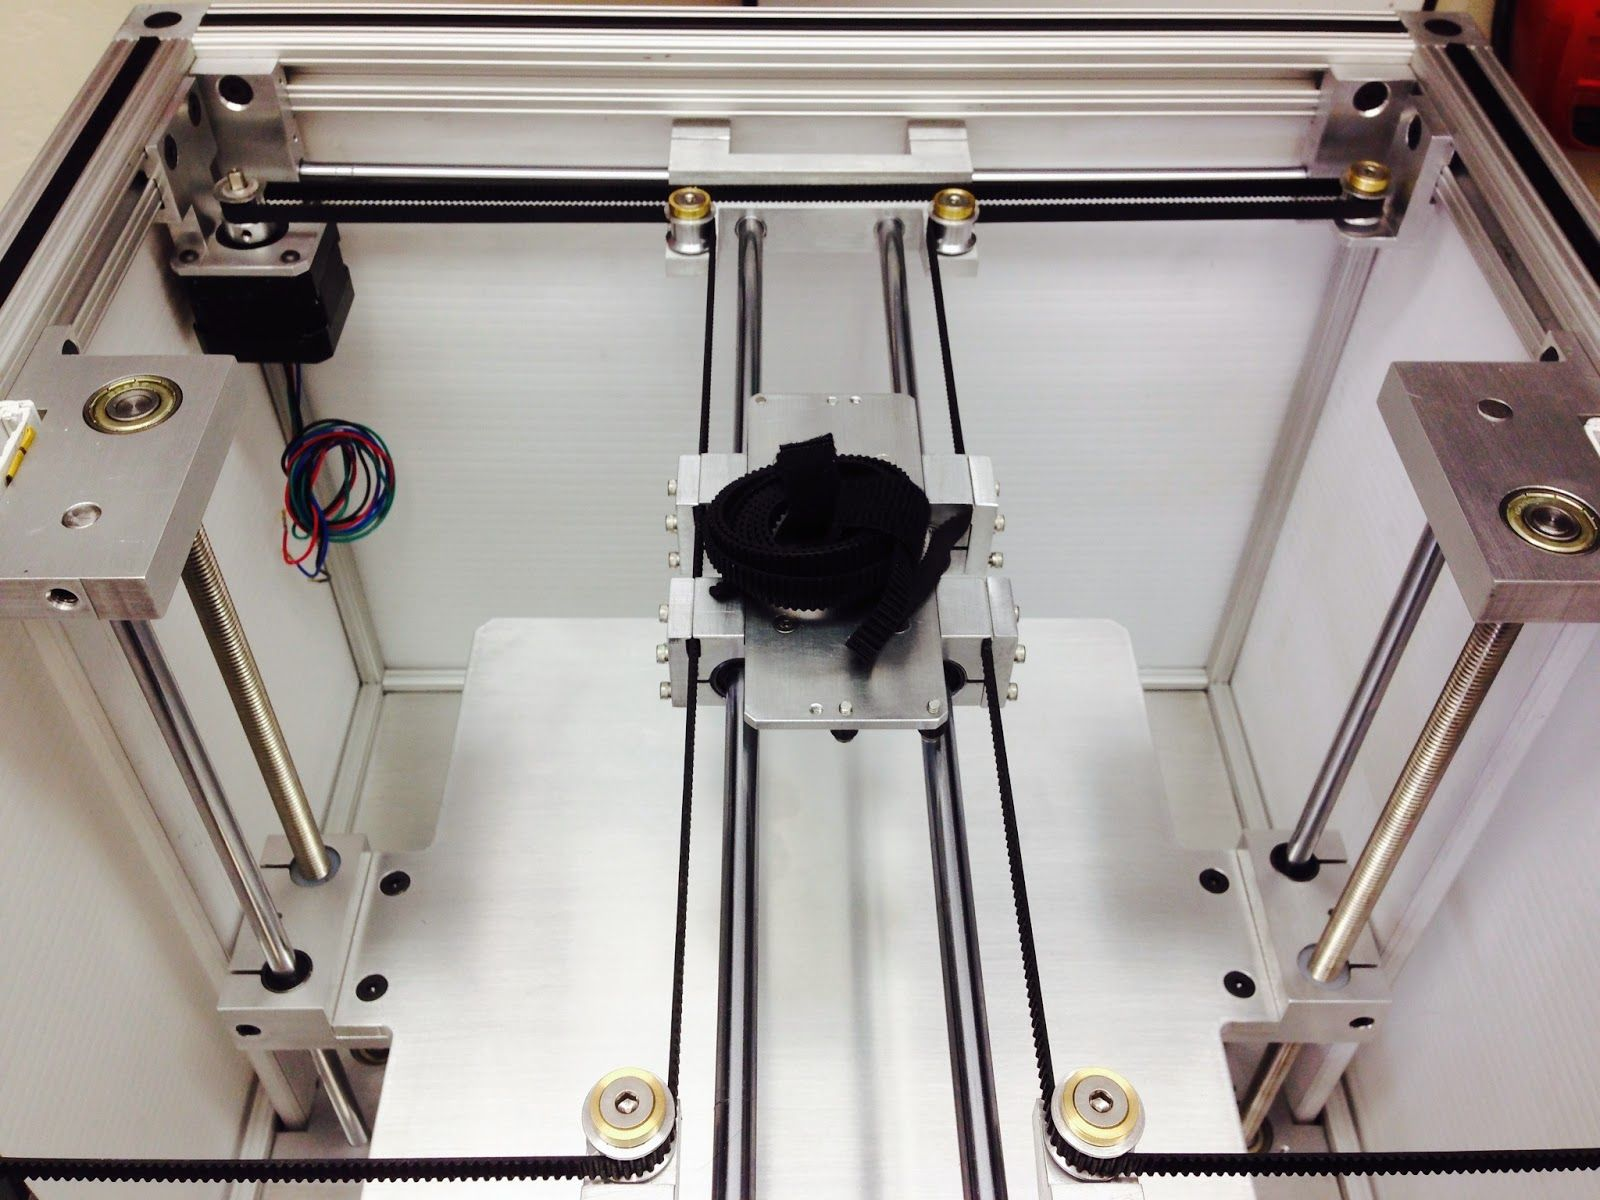 3D Printer 3d printer, 3d printer machine, Printer